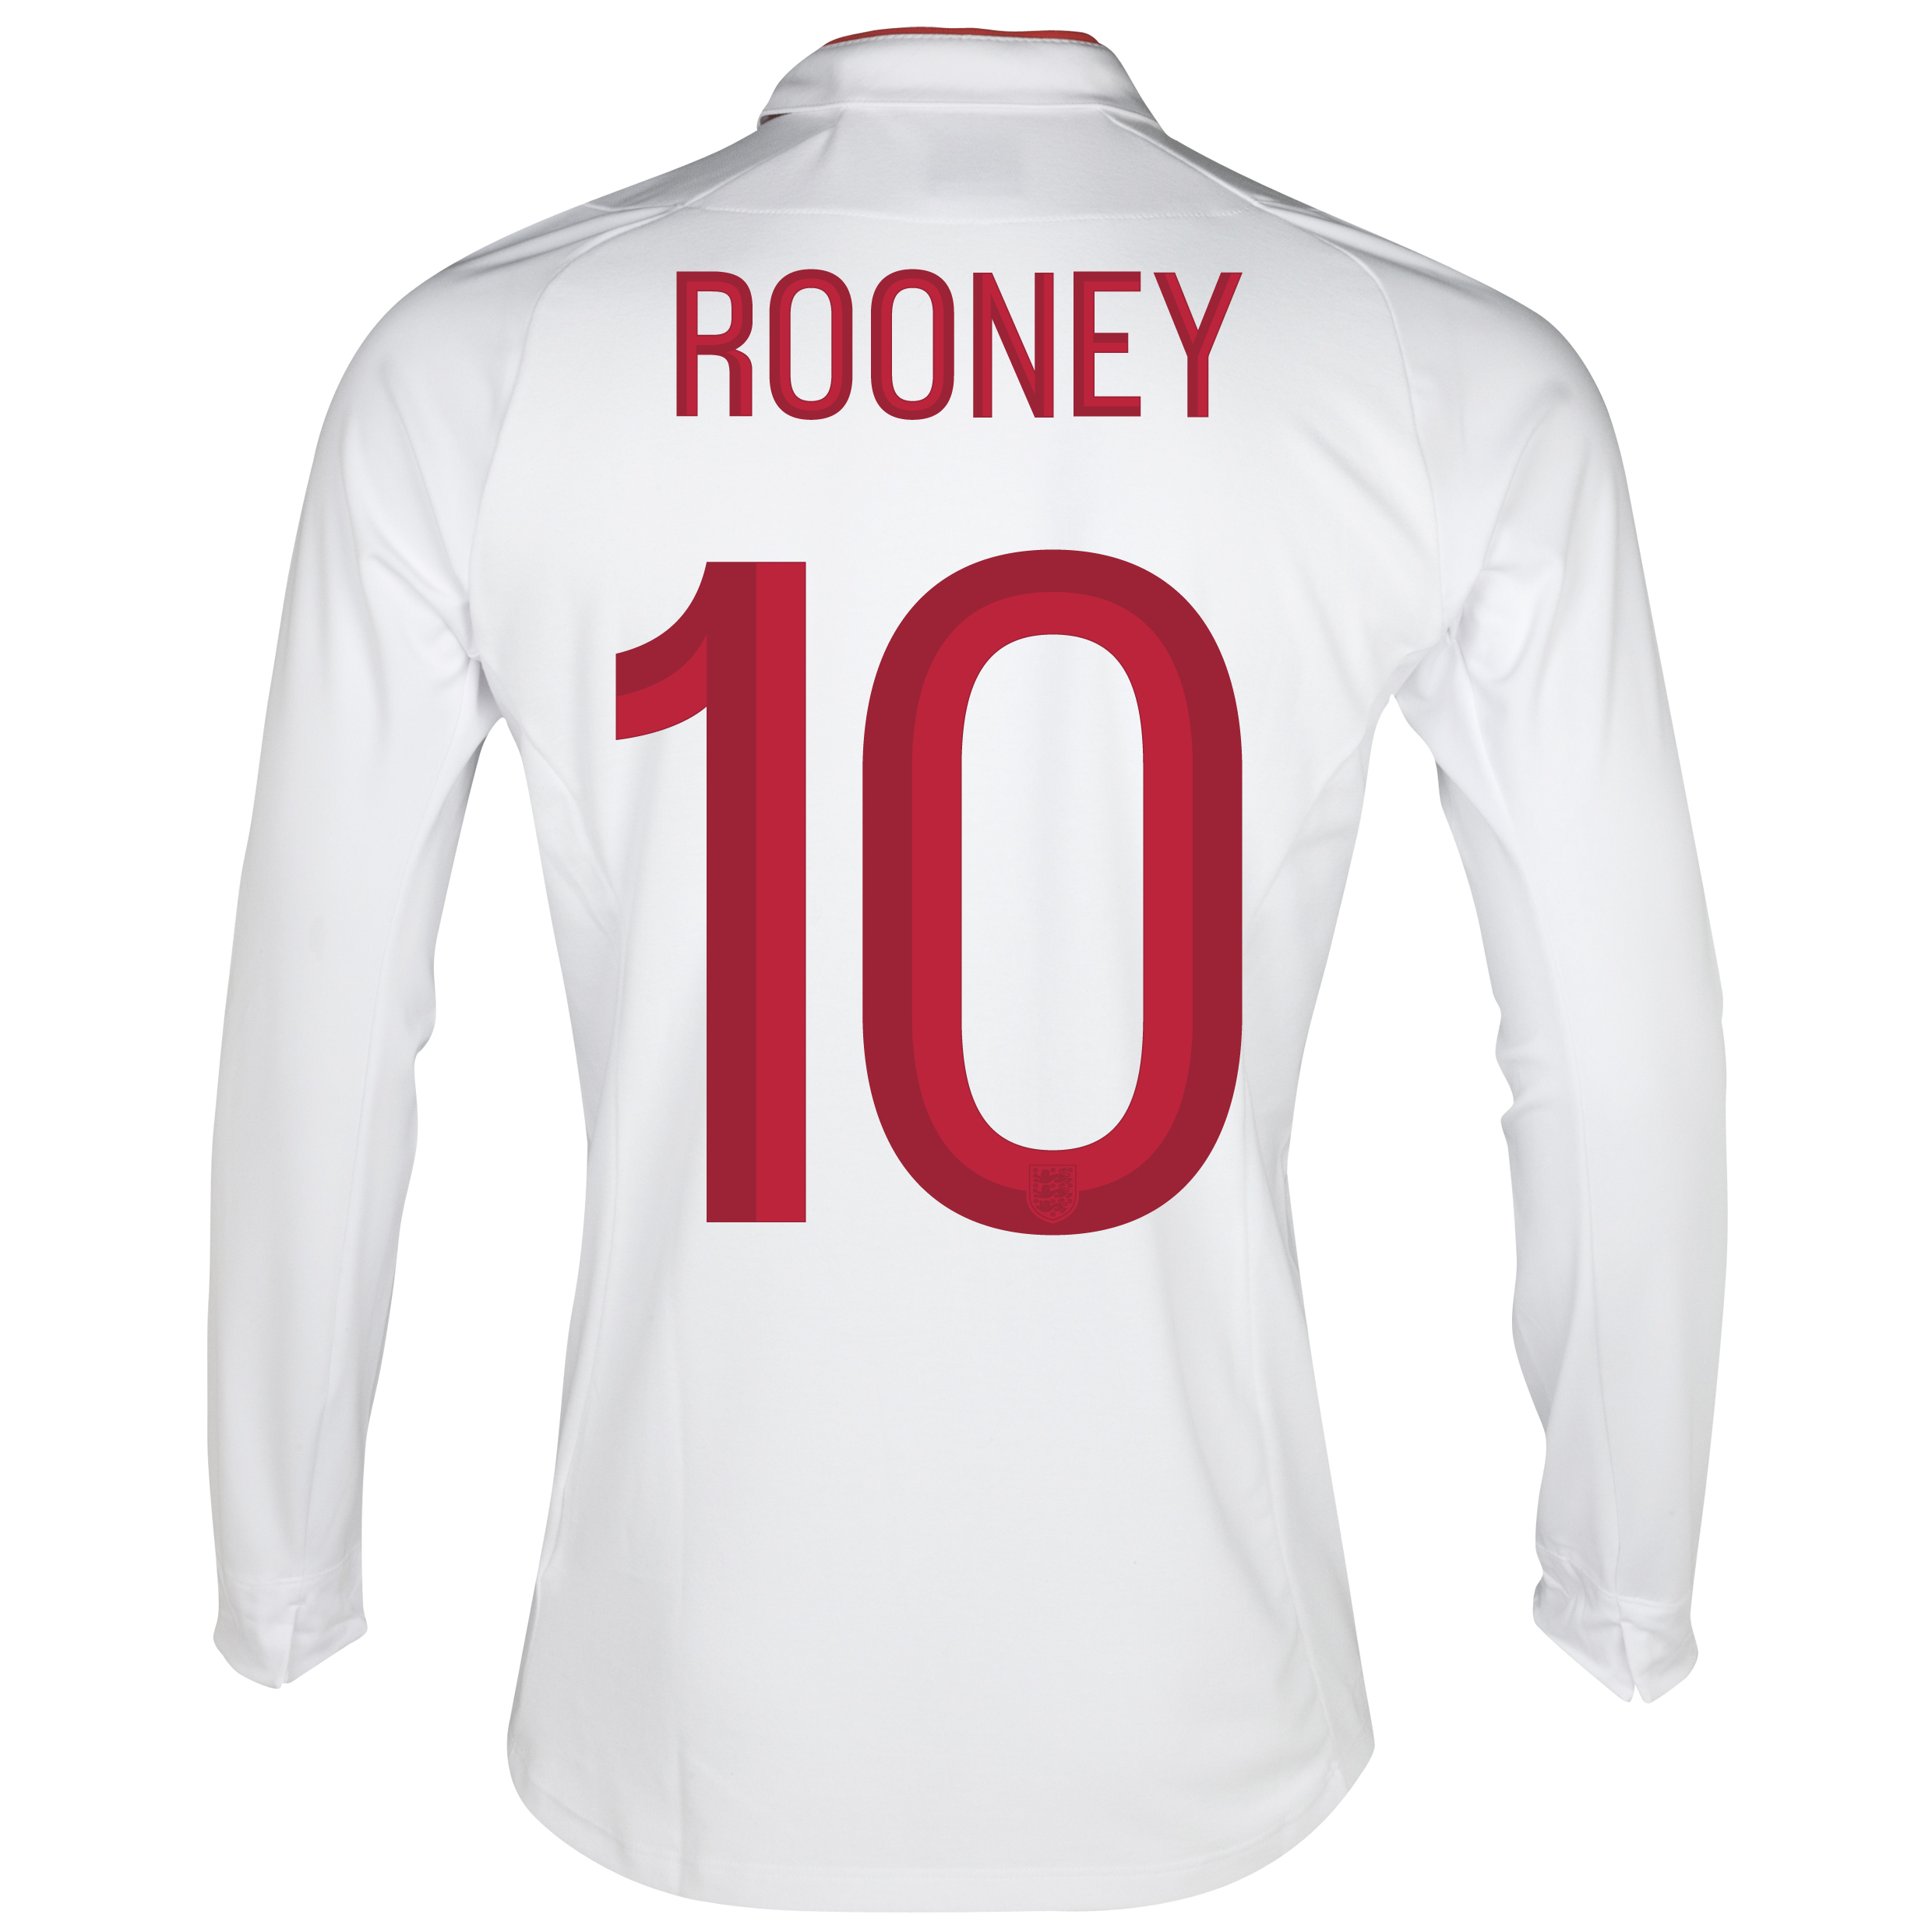 England Home Shirt 2012/13 - Long Sleeve - Boys with Rooney 10 printing